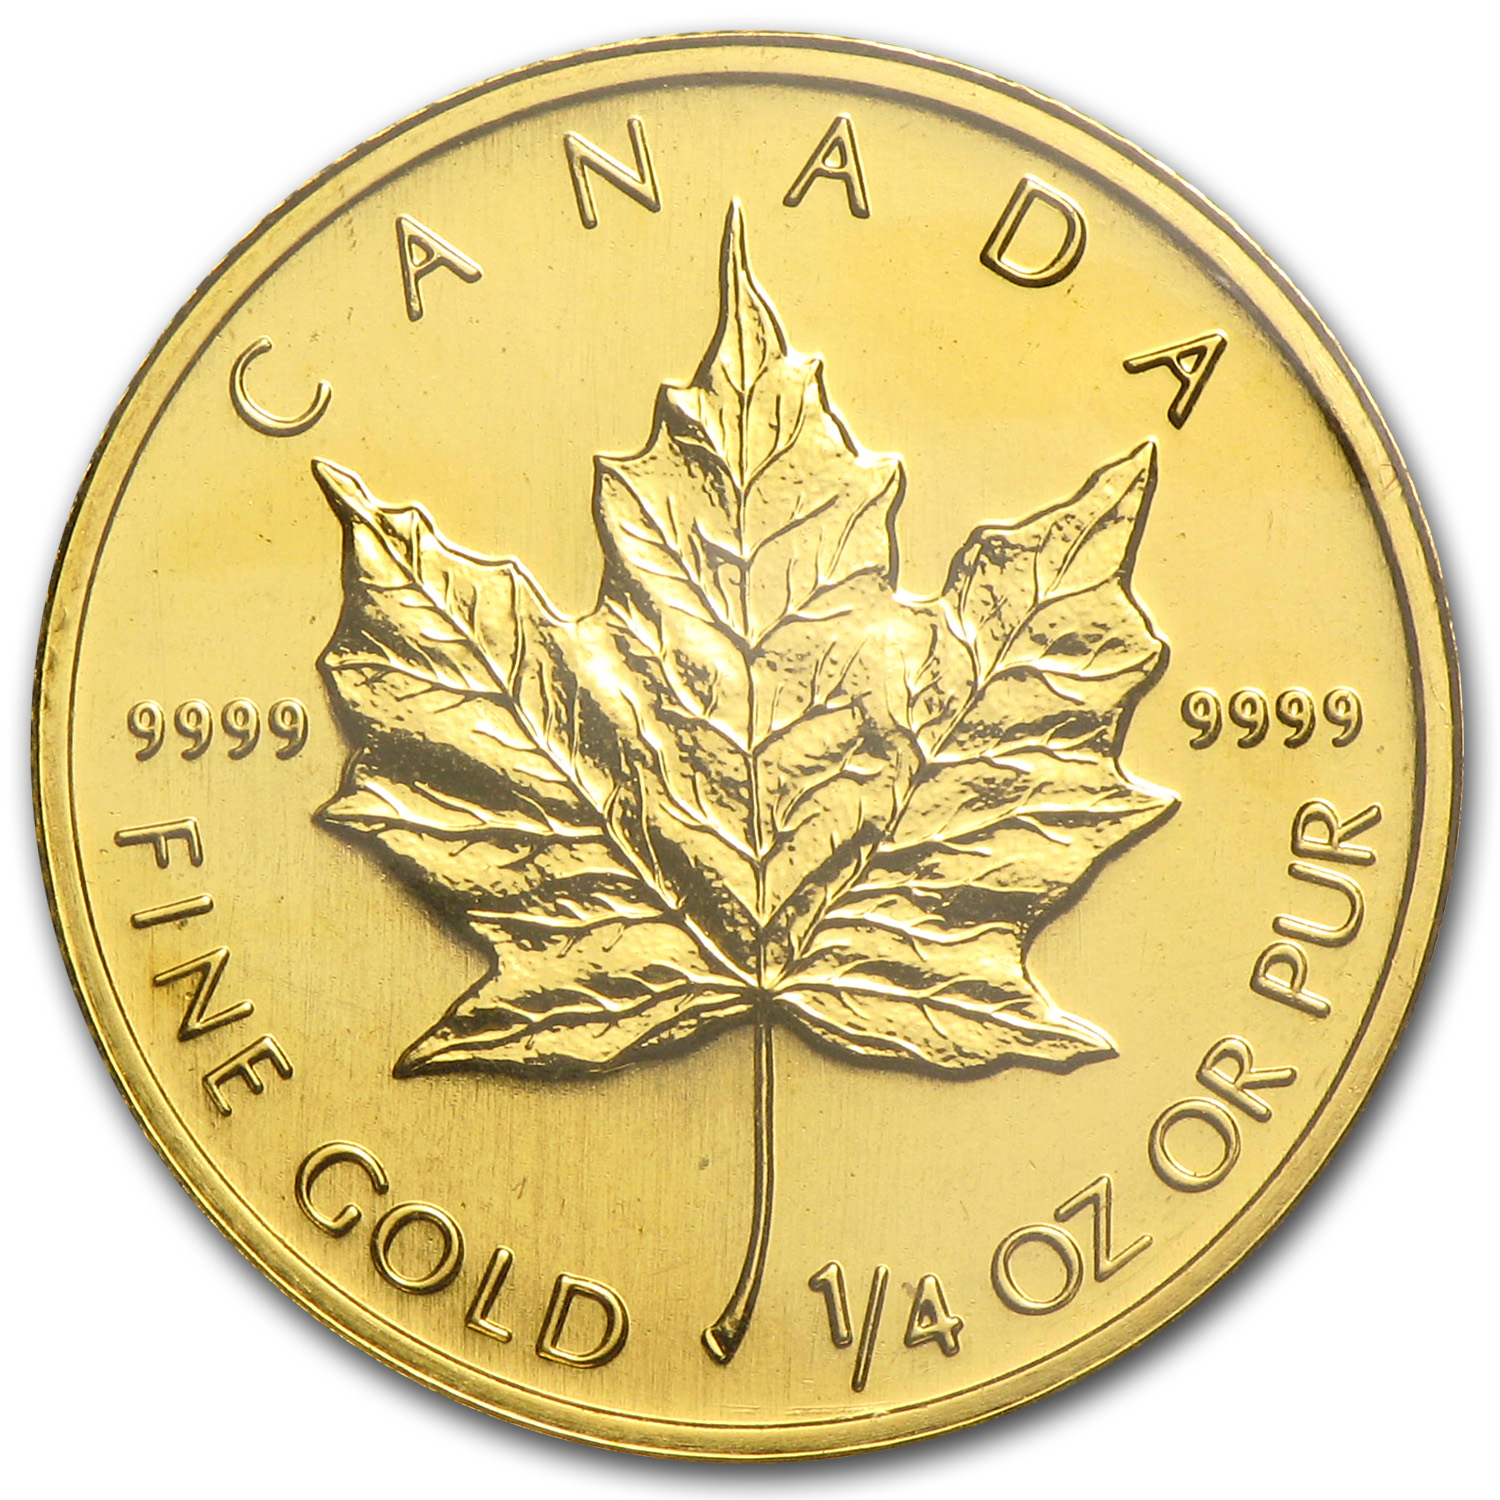 1997 1/4 oz Gold Canadian Maple Leaf